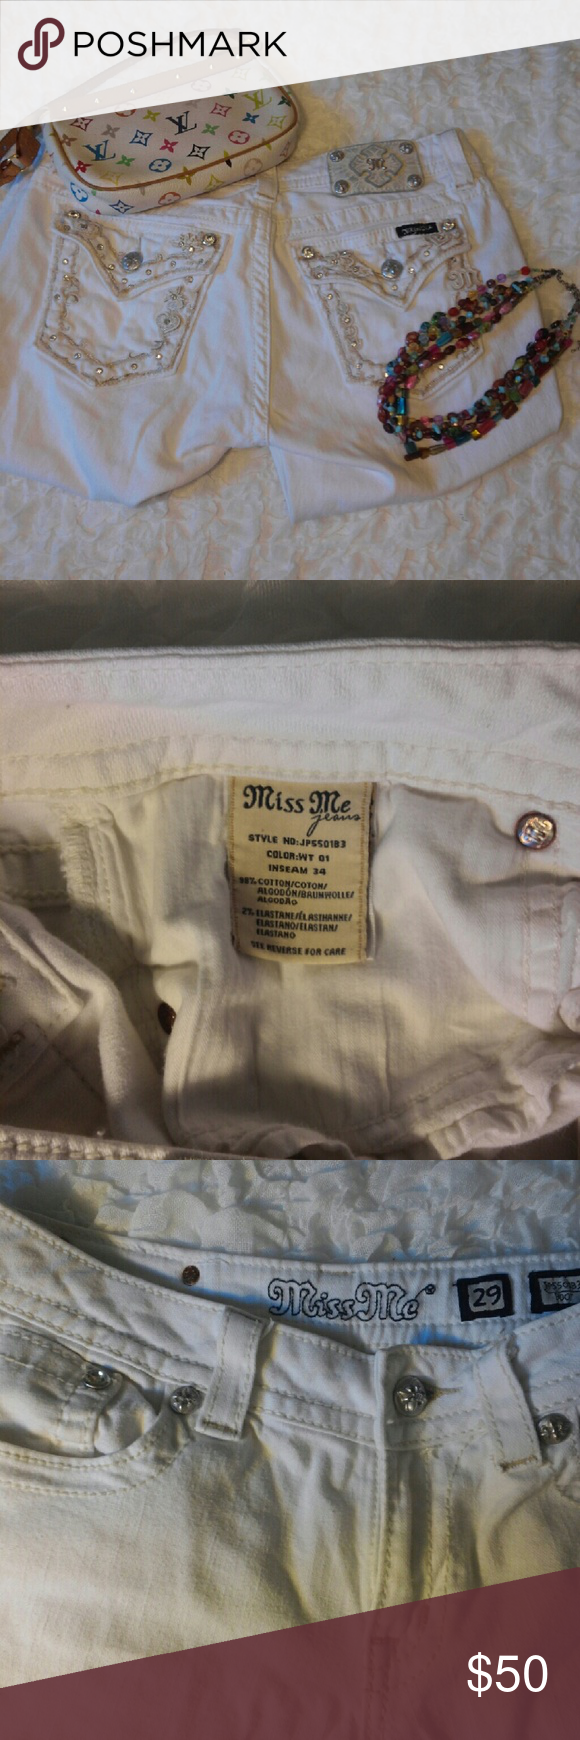 """White Miss Me jeans size 29 Tag says 34"""" inseam. Great condition. Good looking jeans, something a little different in the white color and a really great pocket! Miss Me Pants Boot Cut & Flare"""